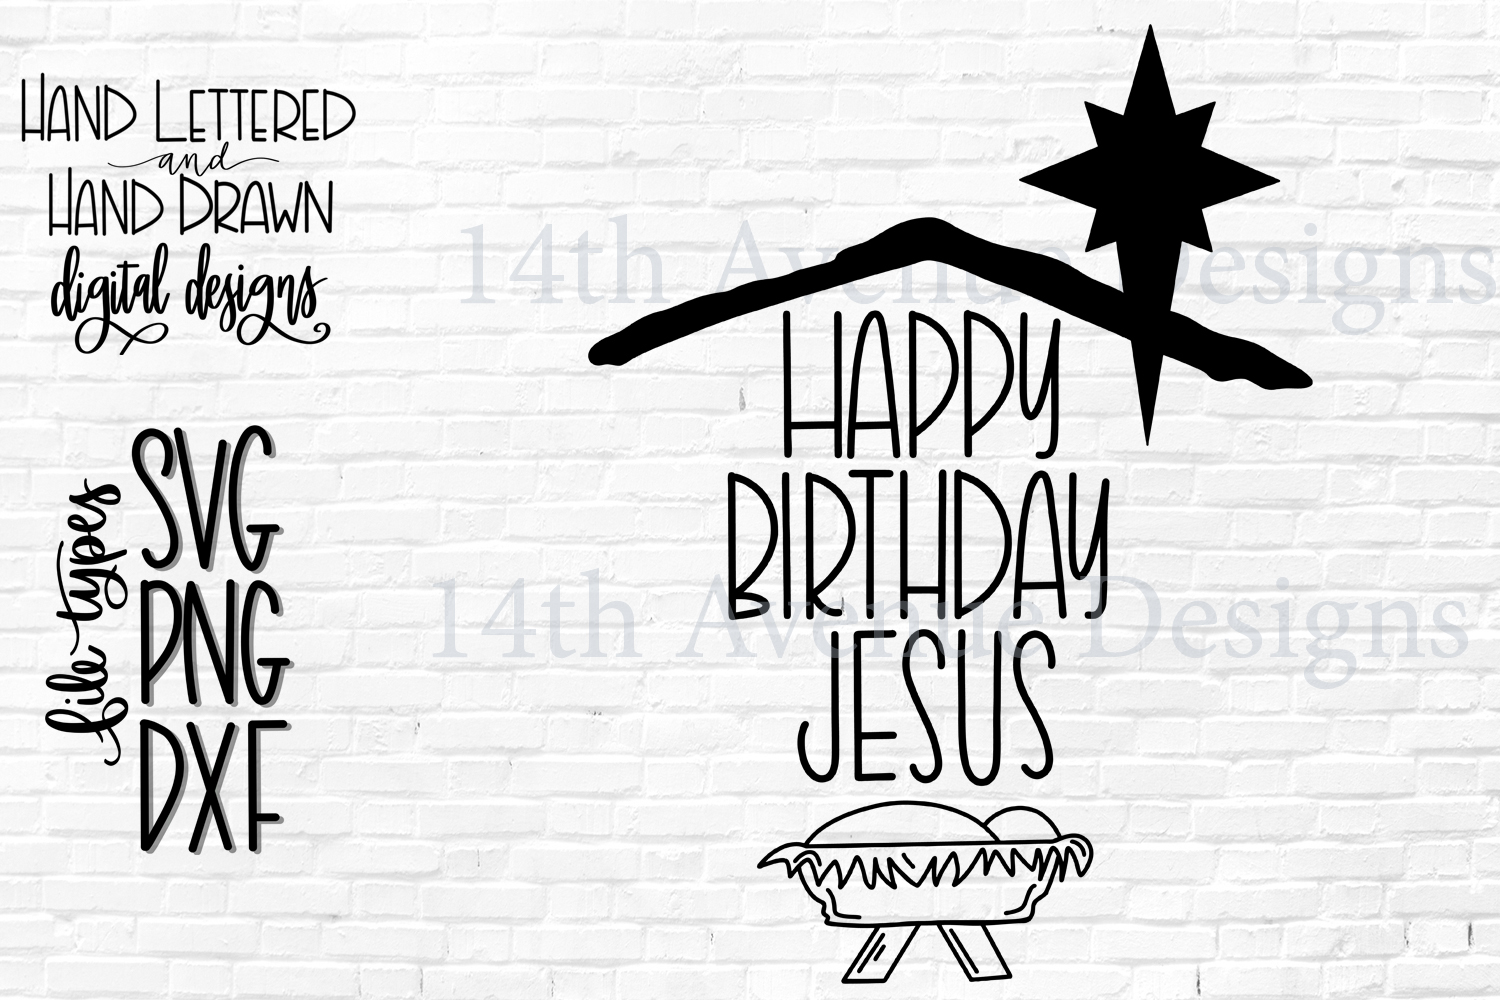 Happy Birthday Jesus SVG Cut File, Hand Lettered example image 2